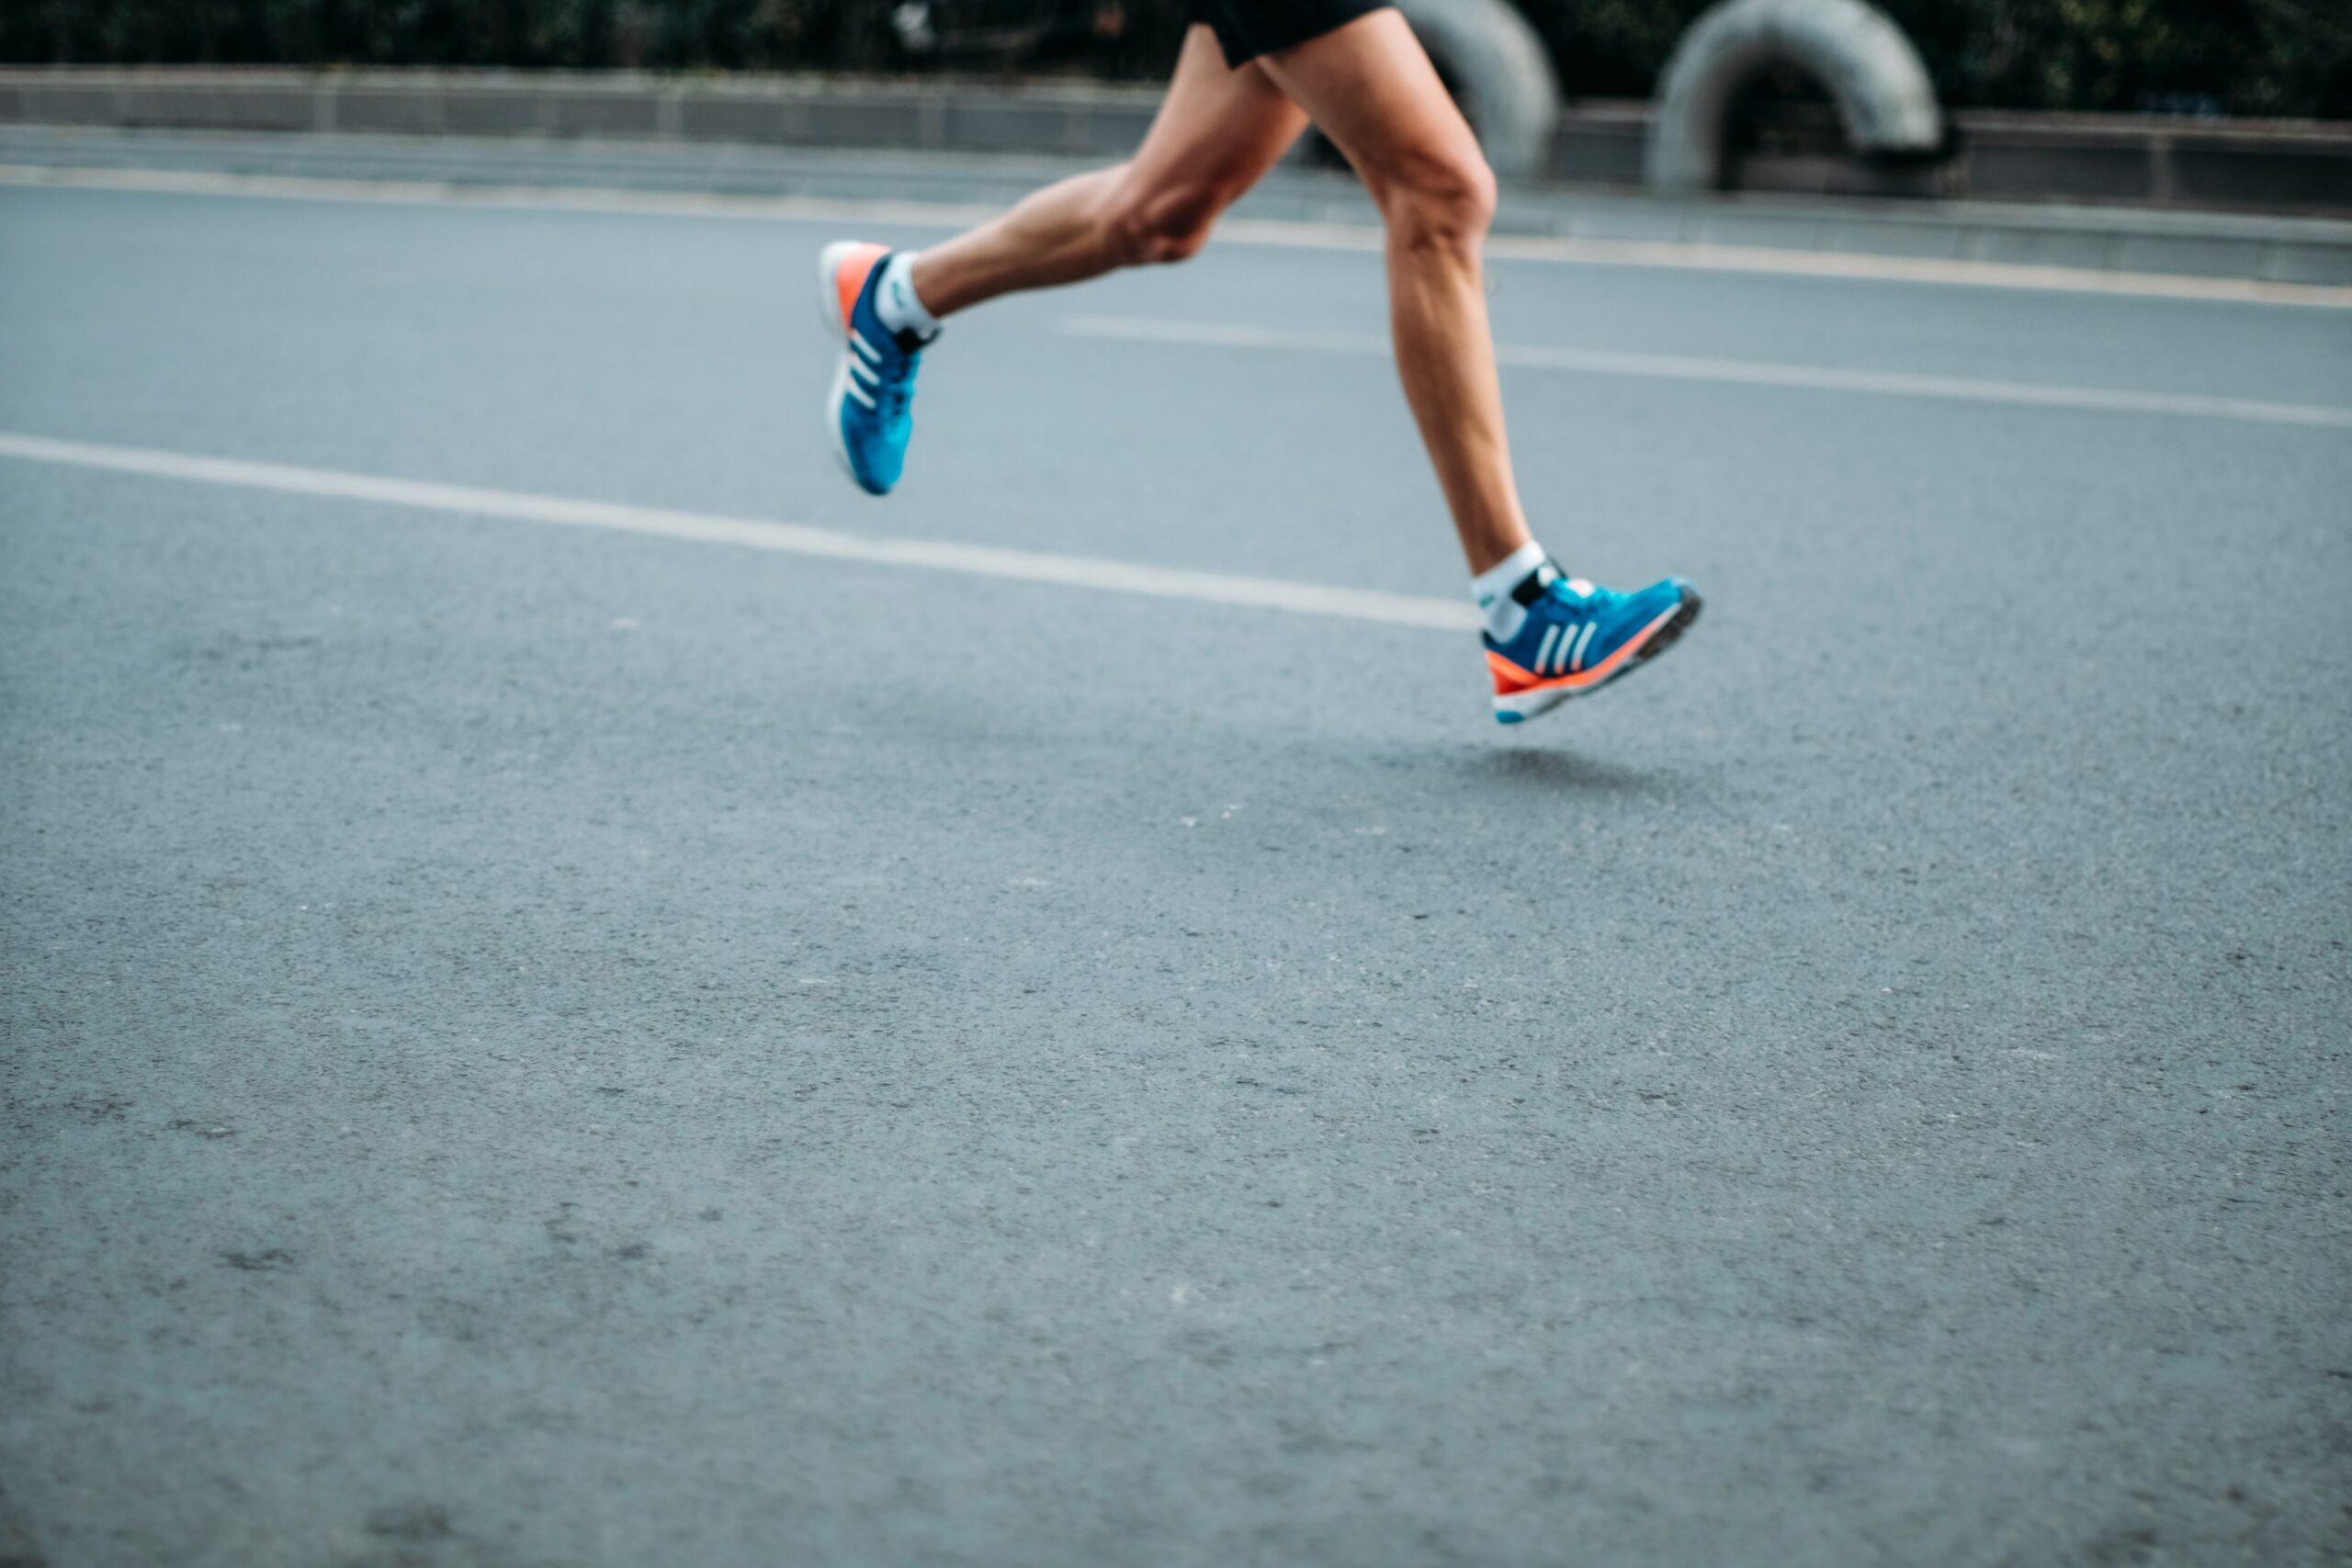 Are CrossFit shoes good for running?